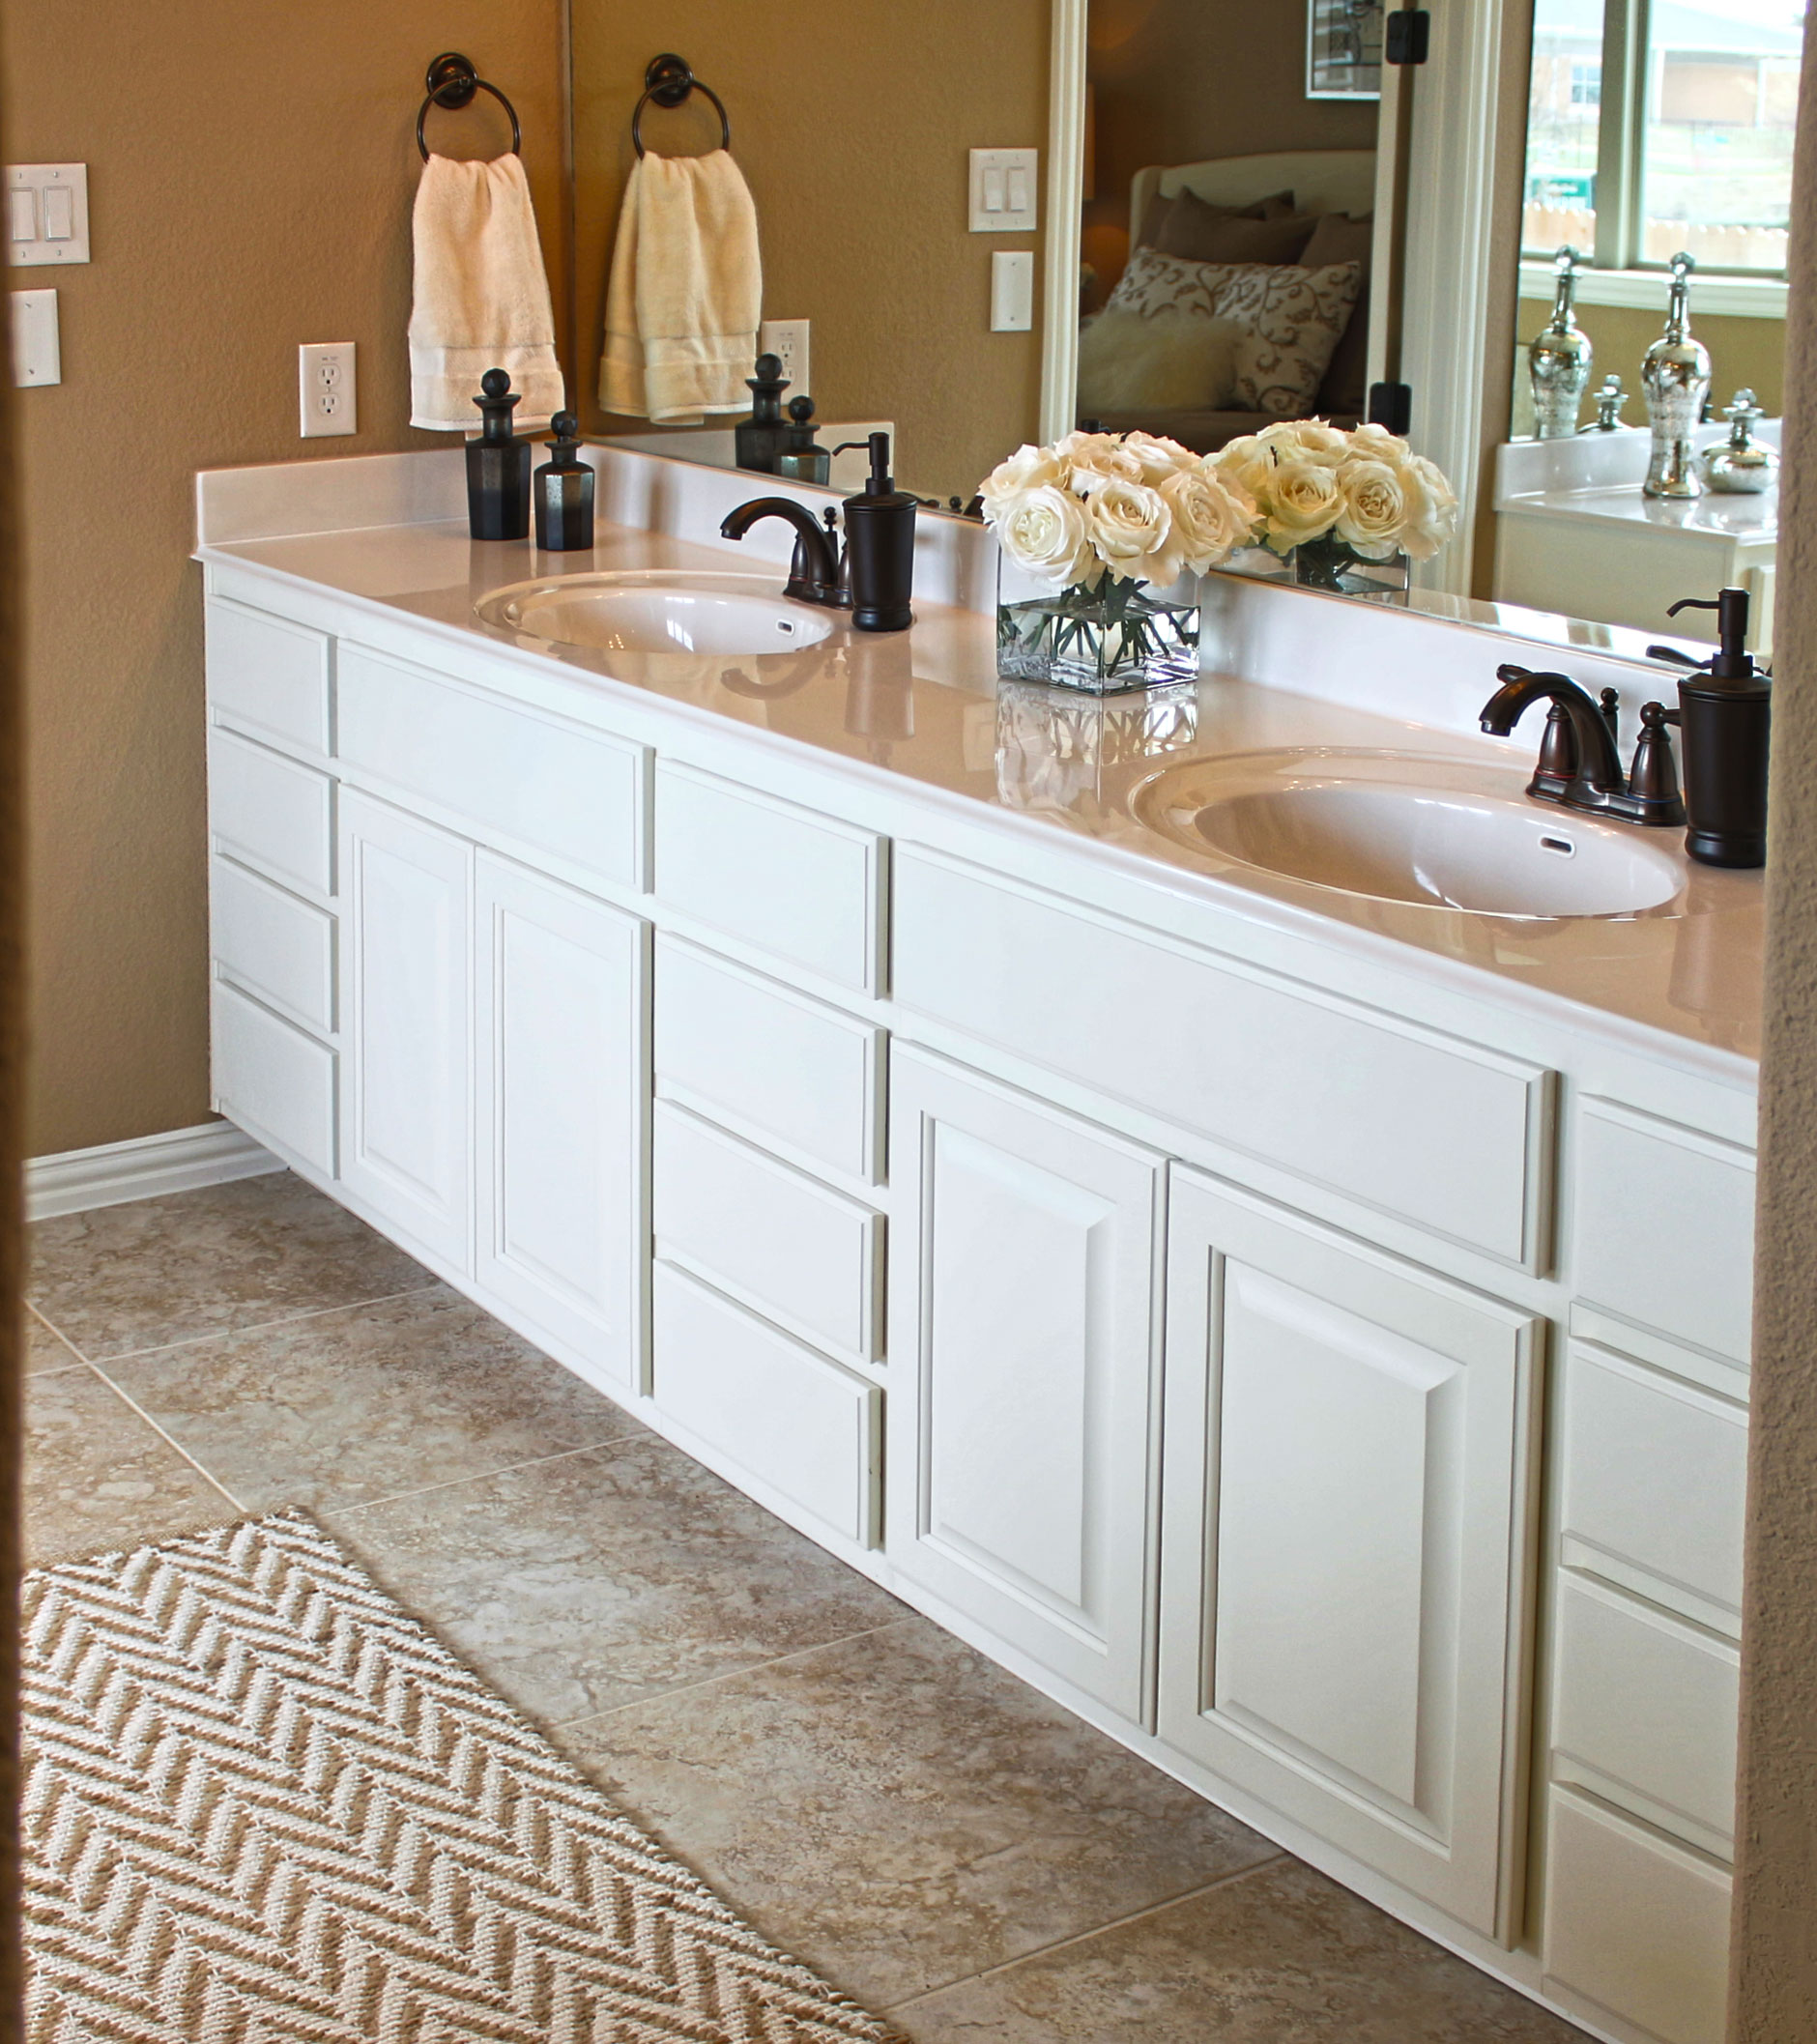 Parkside at Mayfield Ranch master bath cabinets in Bone by Burrows Cabinets